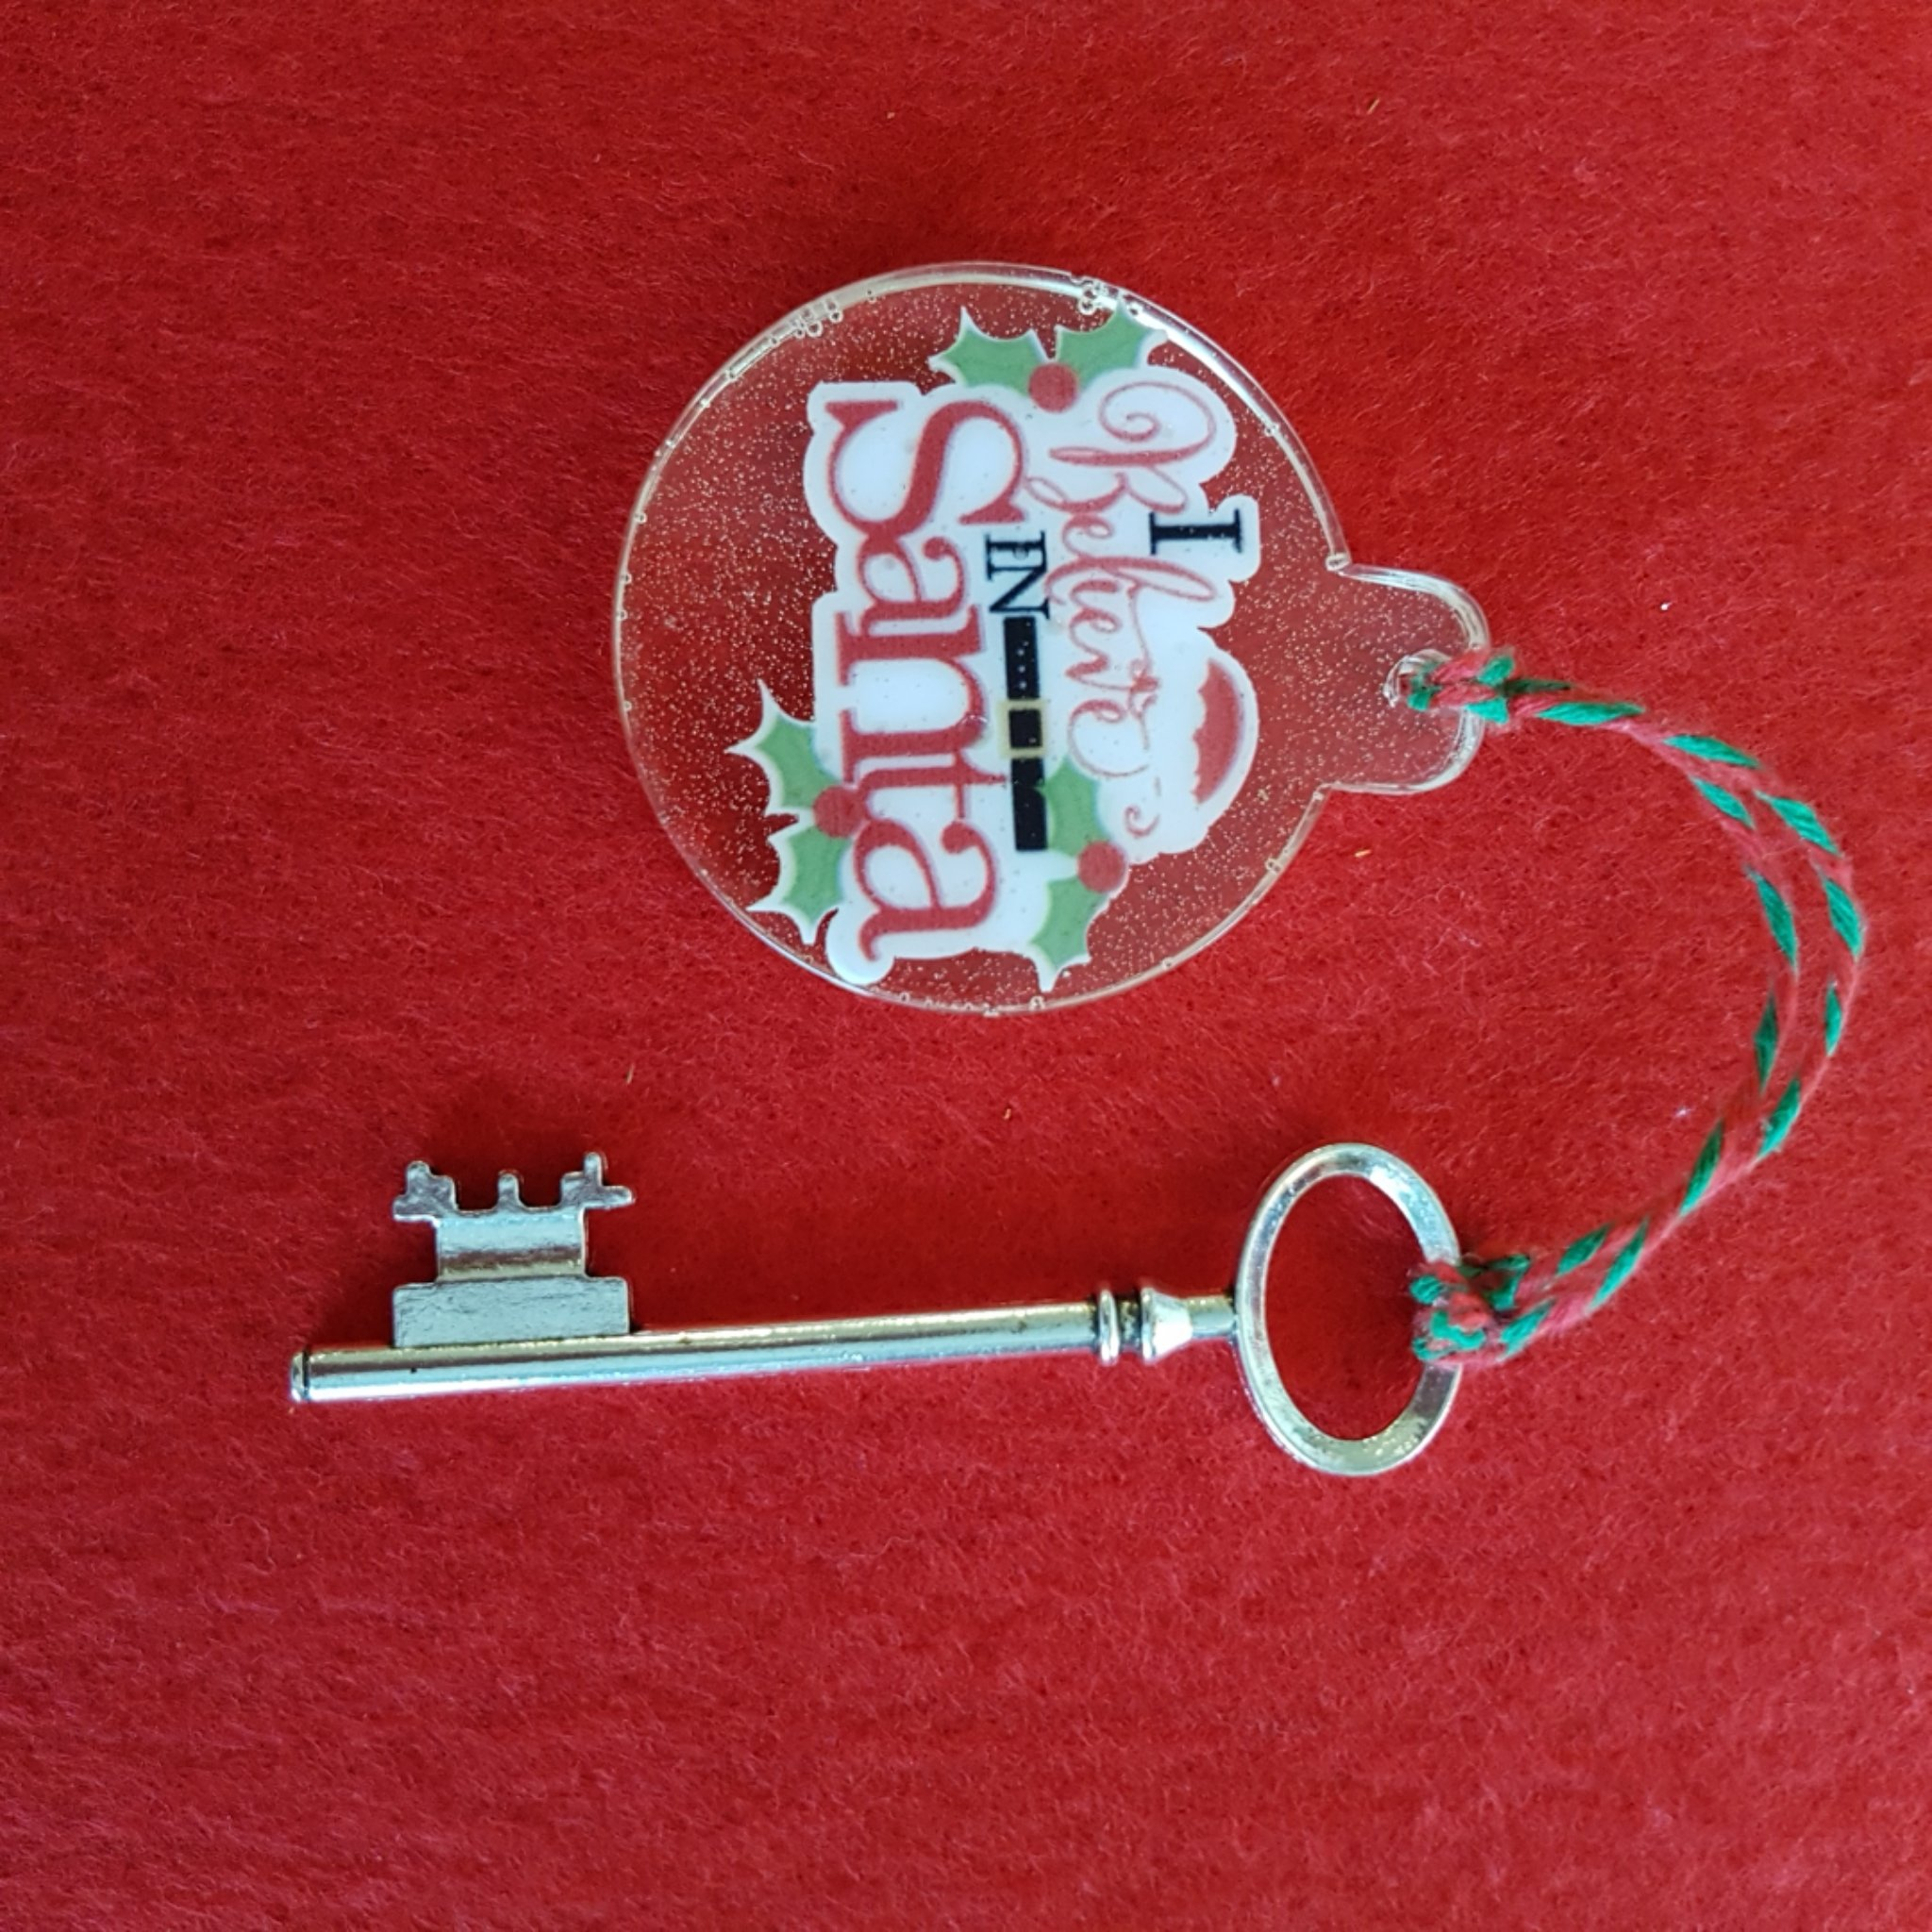 Santas magic key 00288